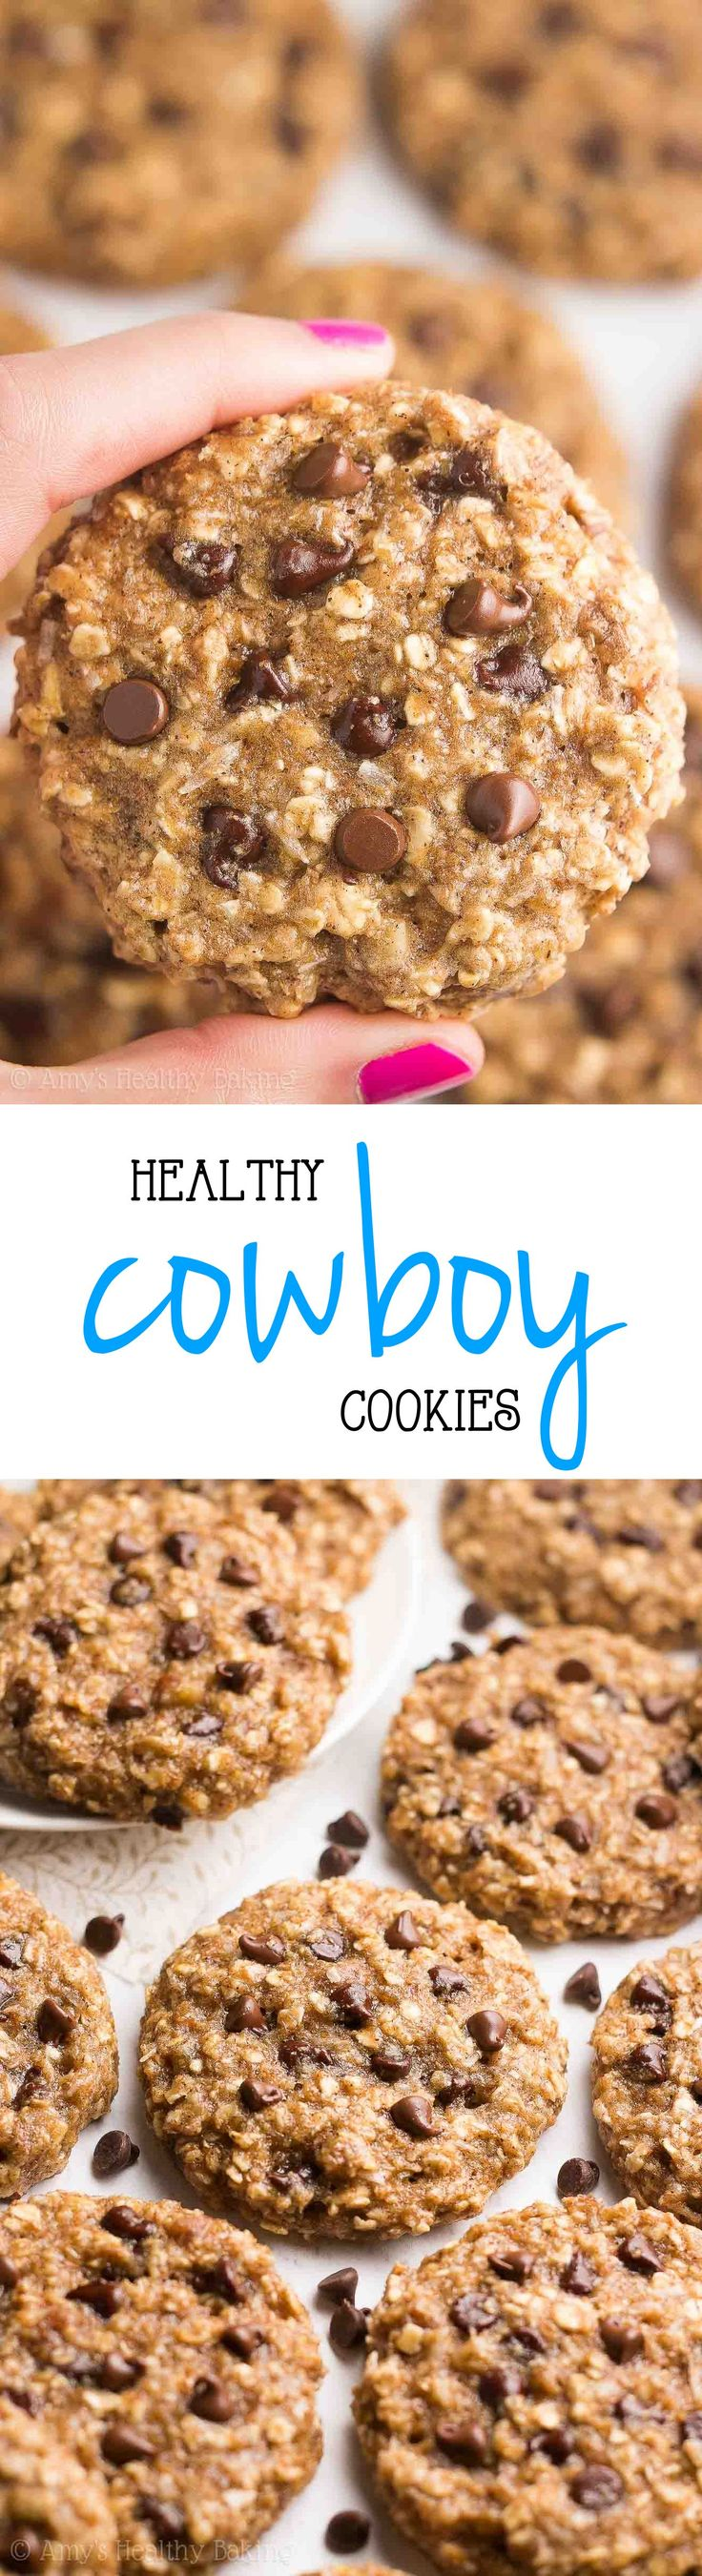 The BEST {Healthy!} Classic Cowboy Cookies! Chewy, 103 calories & full of chocolate chips, pecans & coconut! And this recipe is really easy to make too!